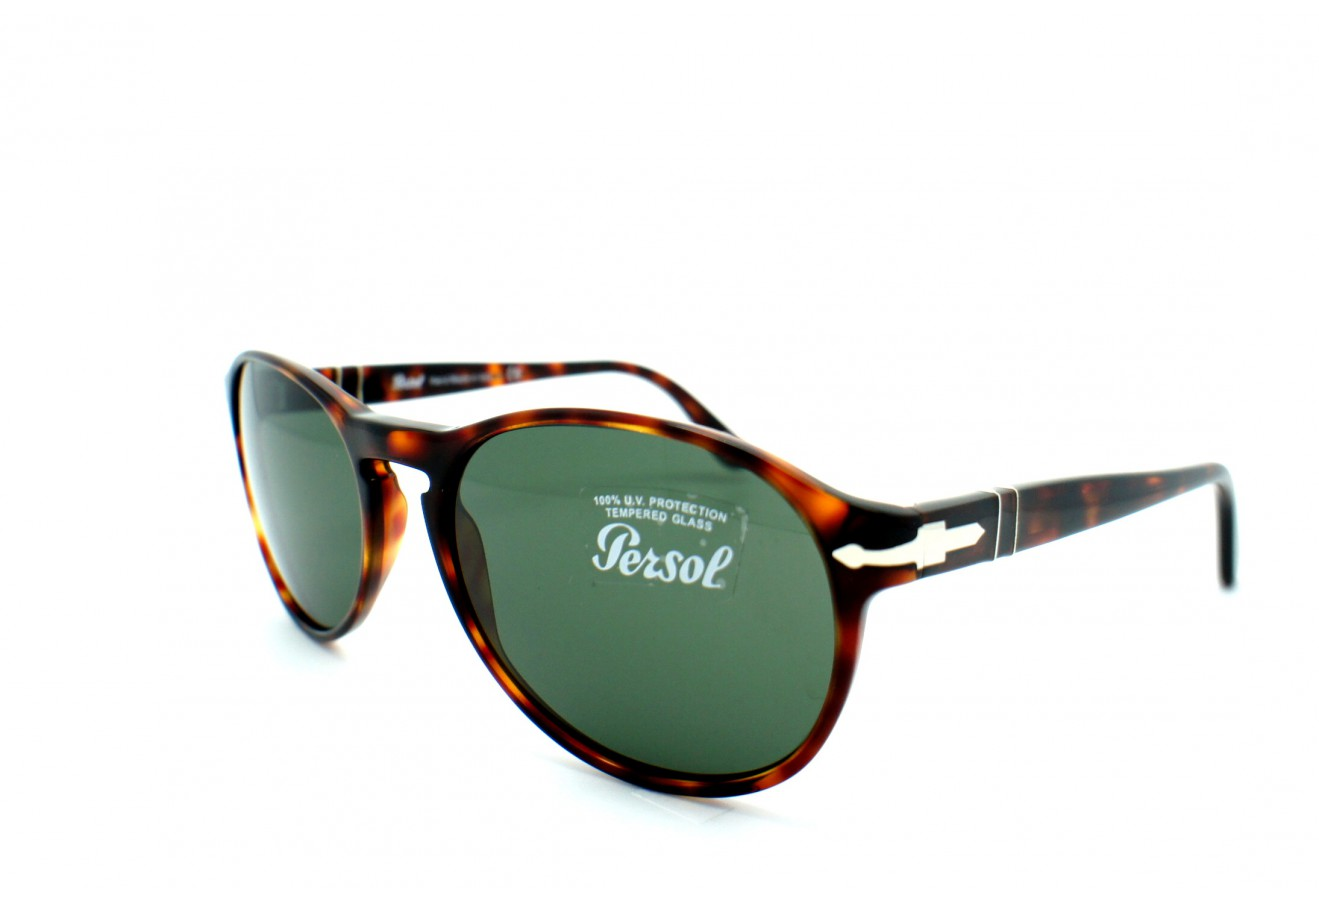 2931 And Education Stem Pictures Ideas Caucus On 20Persol zqSUGpVM